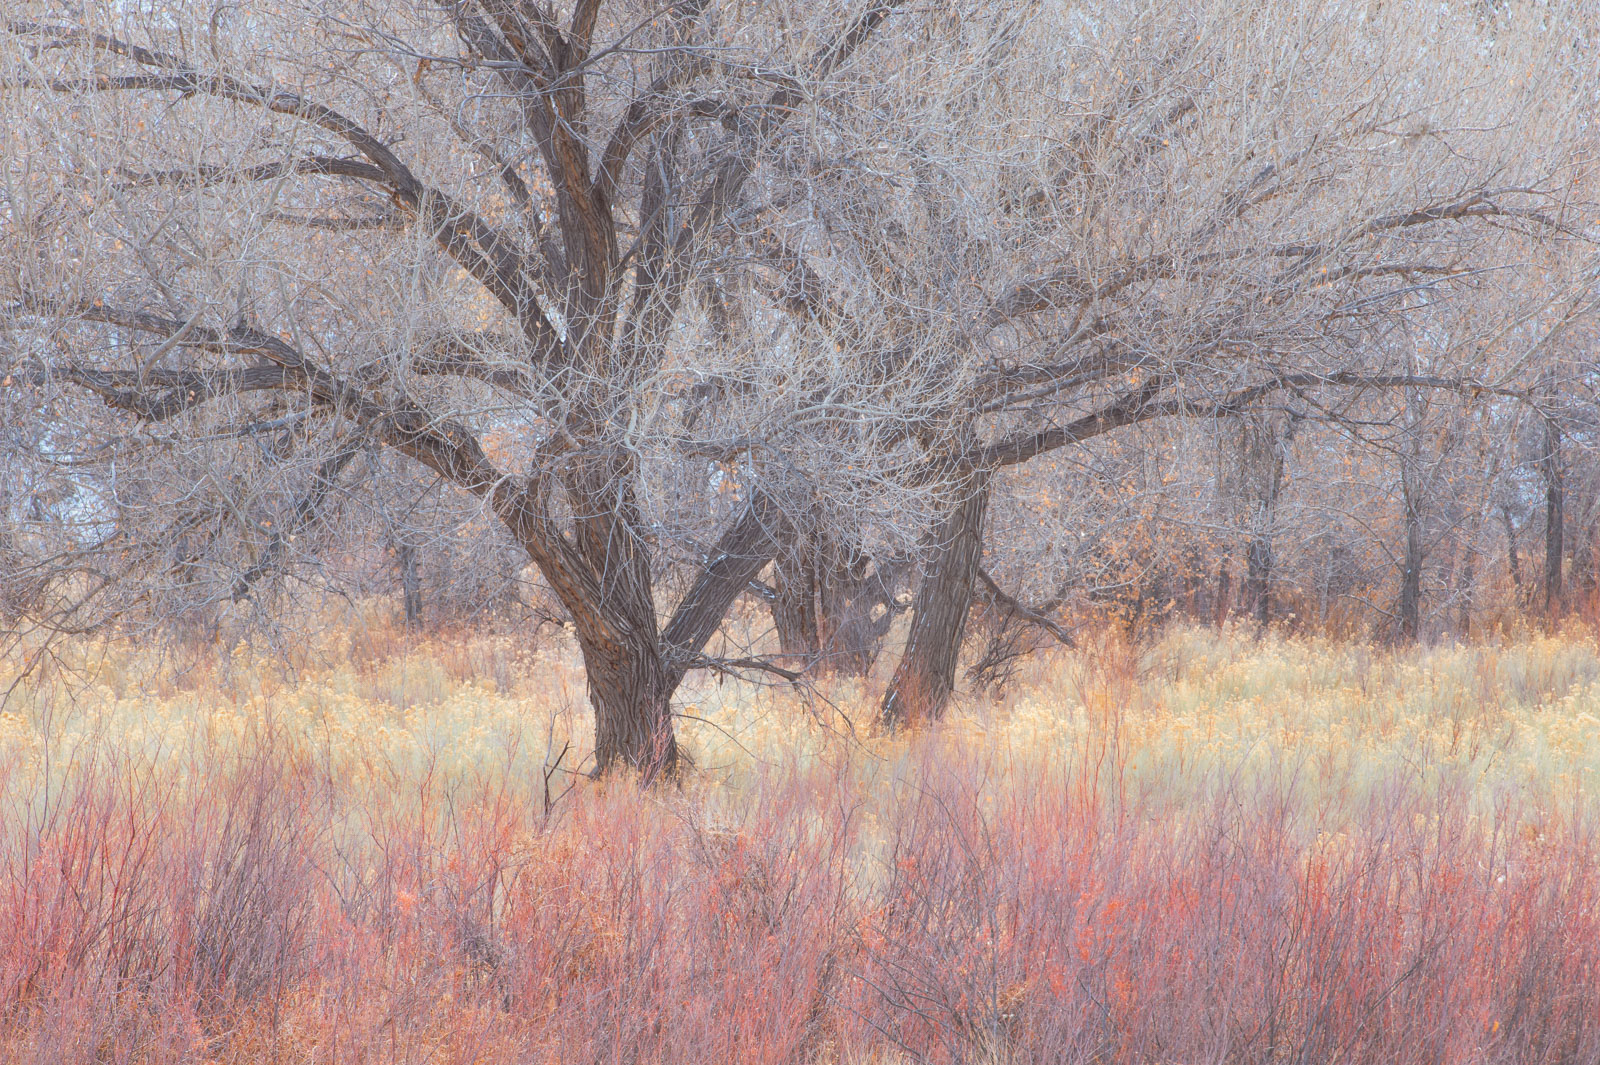 Cottonwoods, Rabbit Brush and Reeds dressed in winter pastels along the Fremont River, Utah.